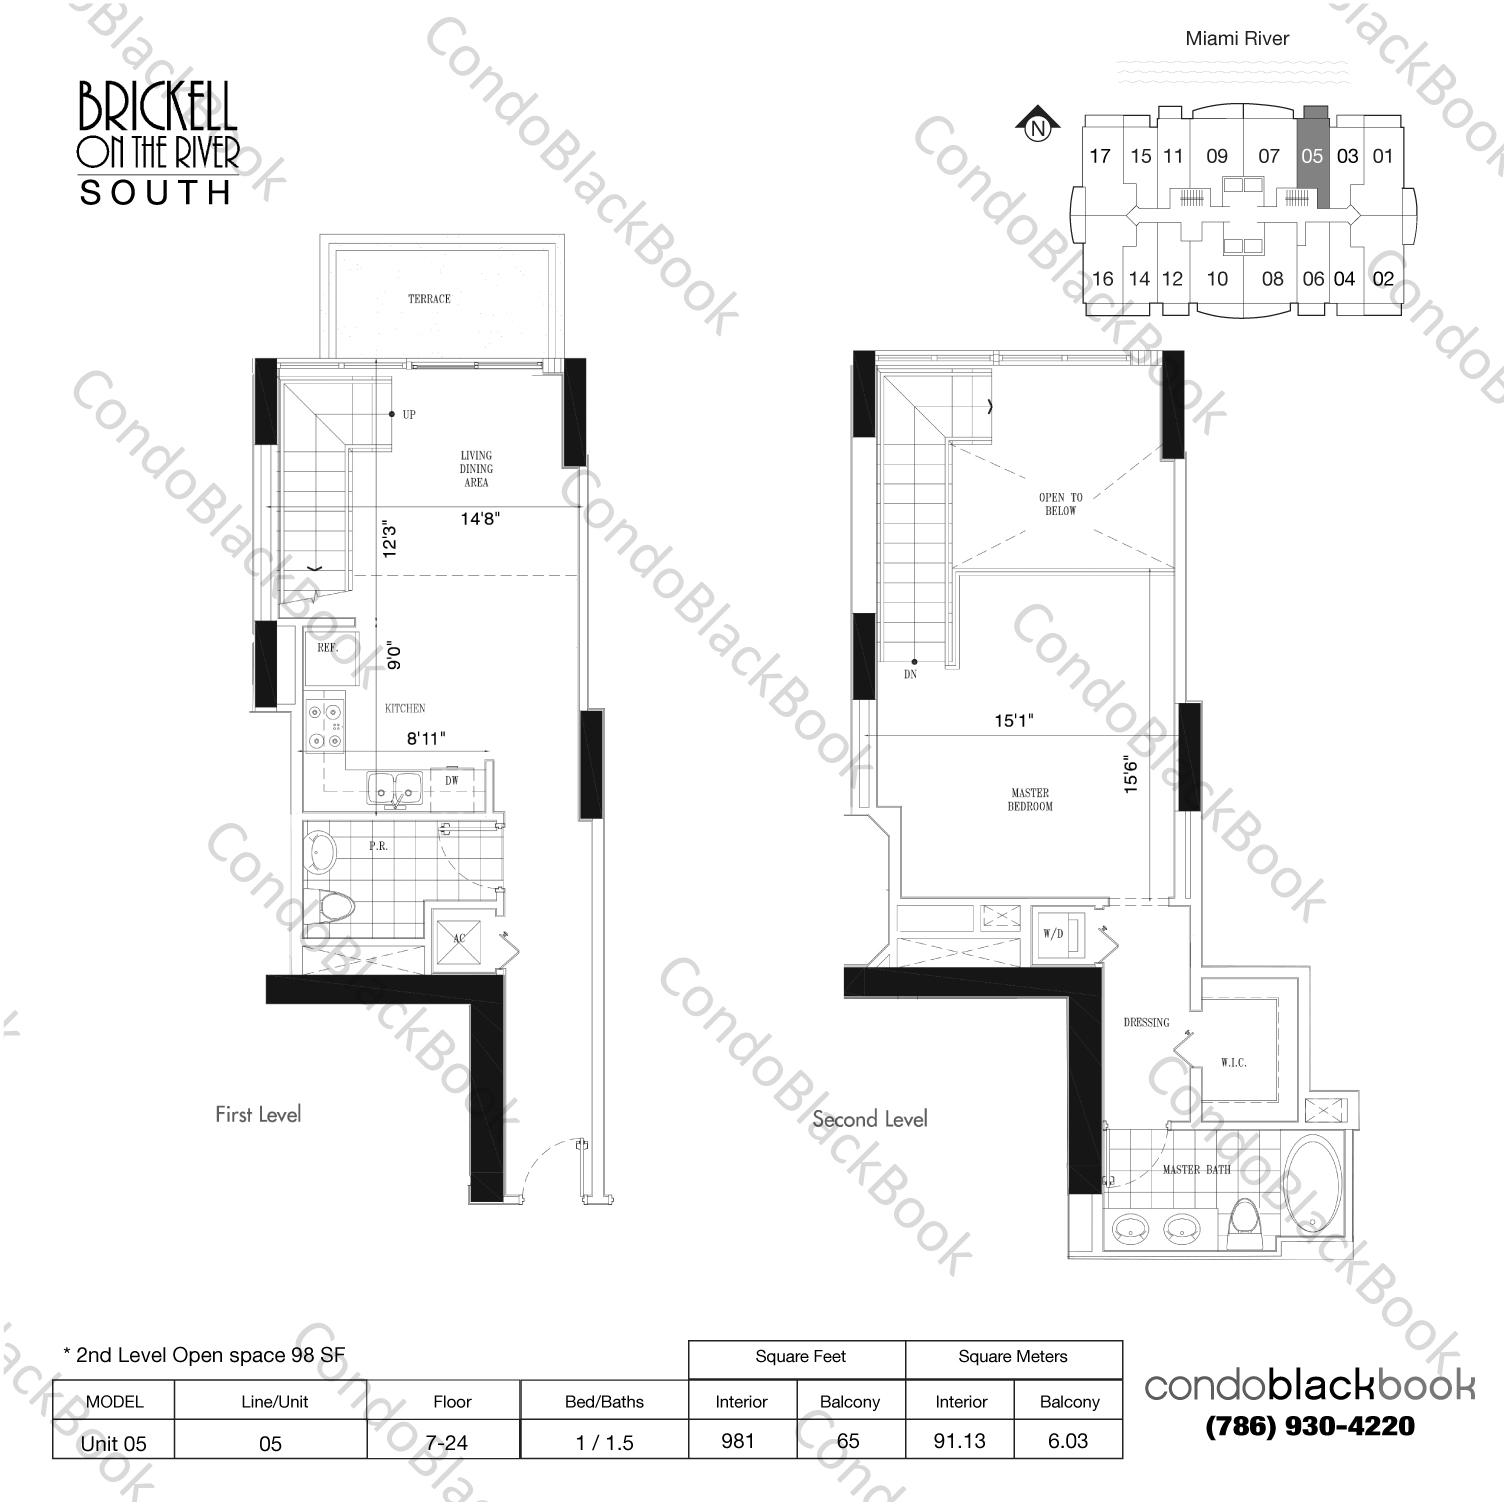 Floor plan for Brickell on the River South Brickell Miami, model Unit 05, line 05, 1/1.5 bedrooms, 883 sq ft